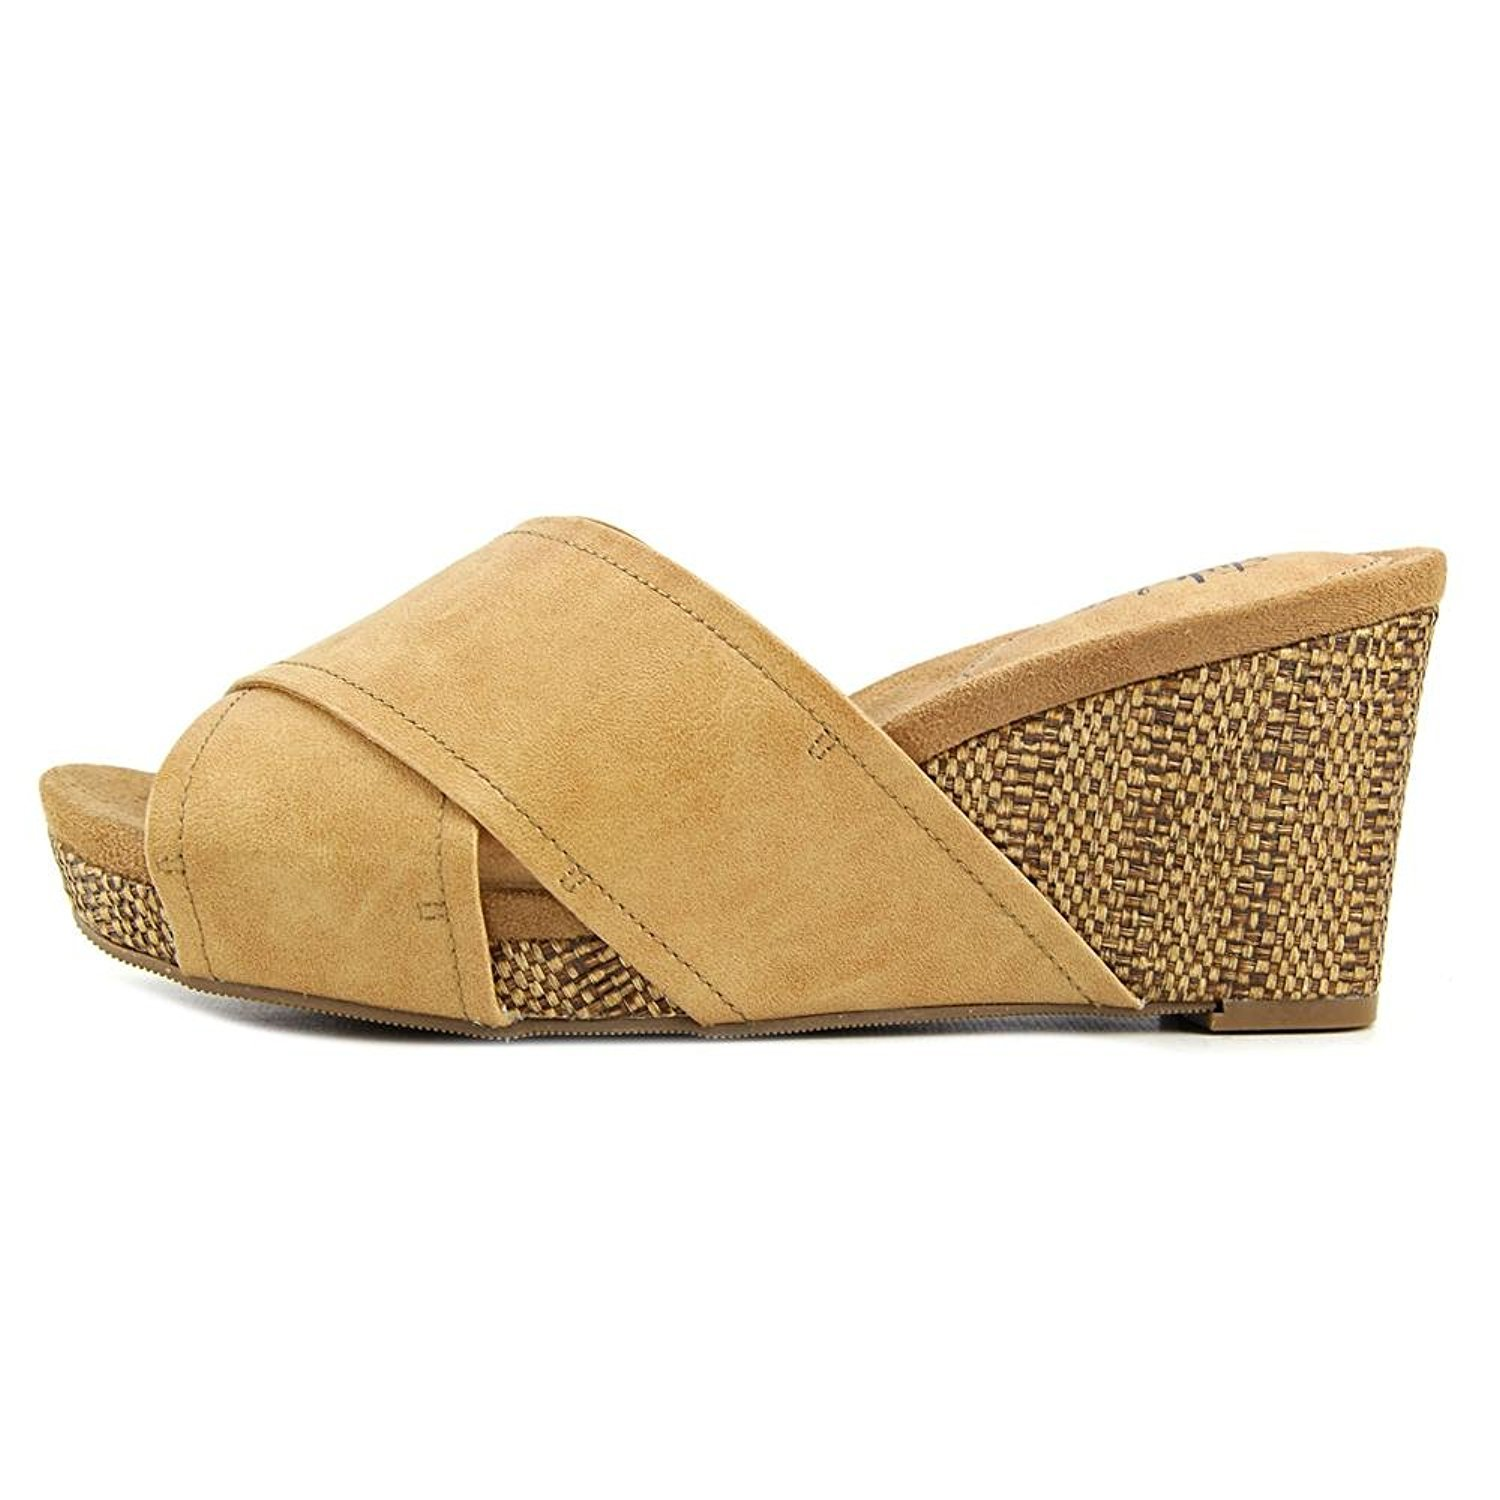 Style & Co. Womens Jillee Open Toe Casual Platform Sandals, Natural, Size 12.0